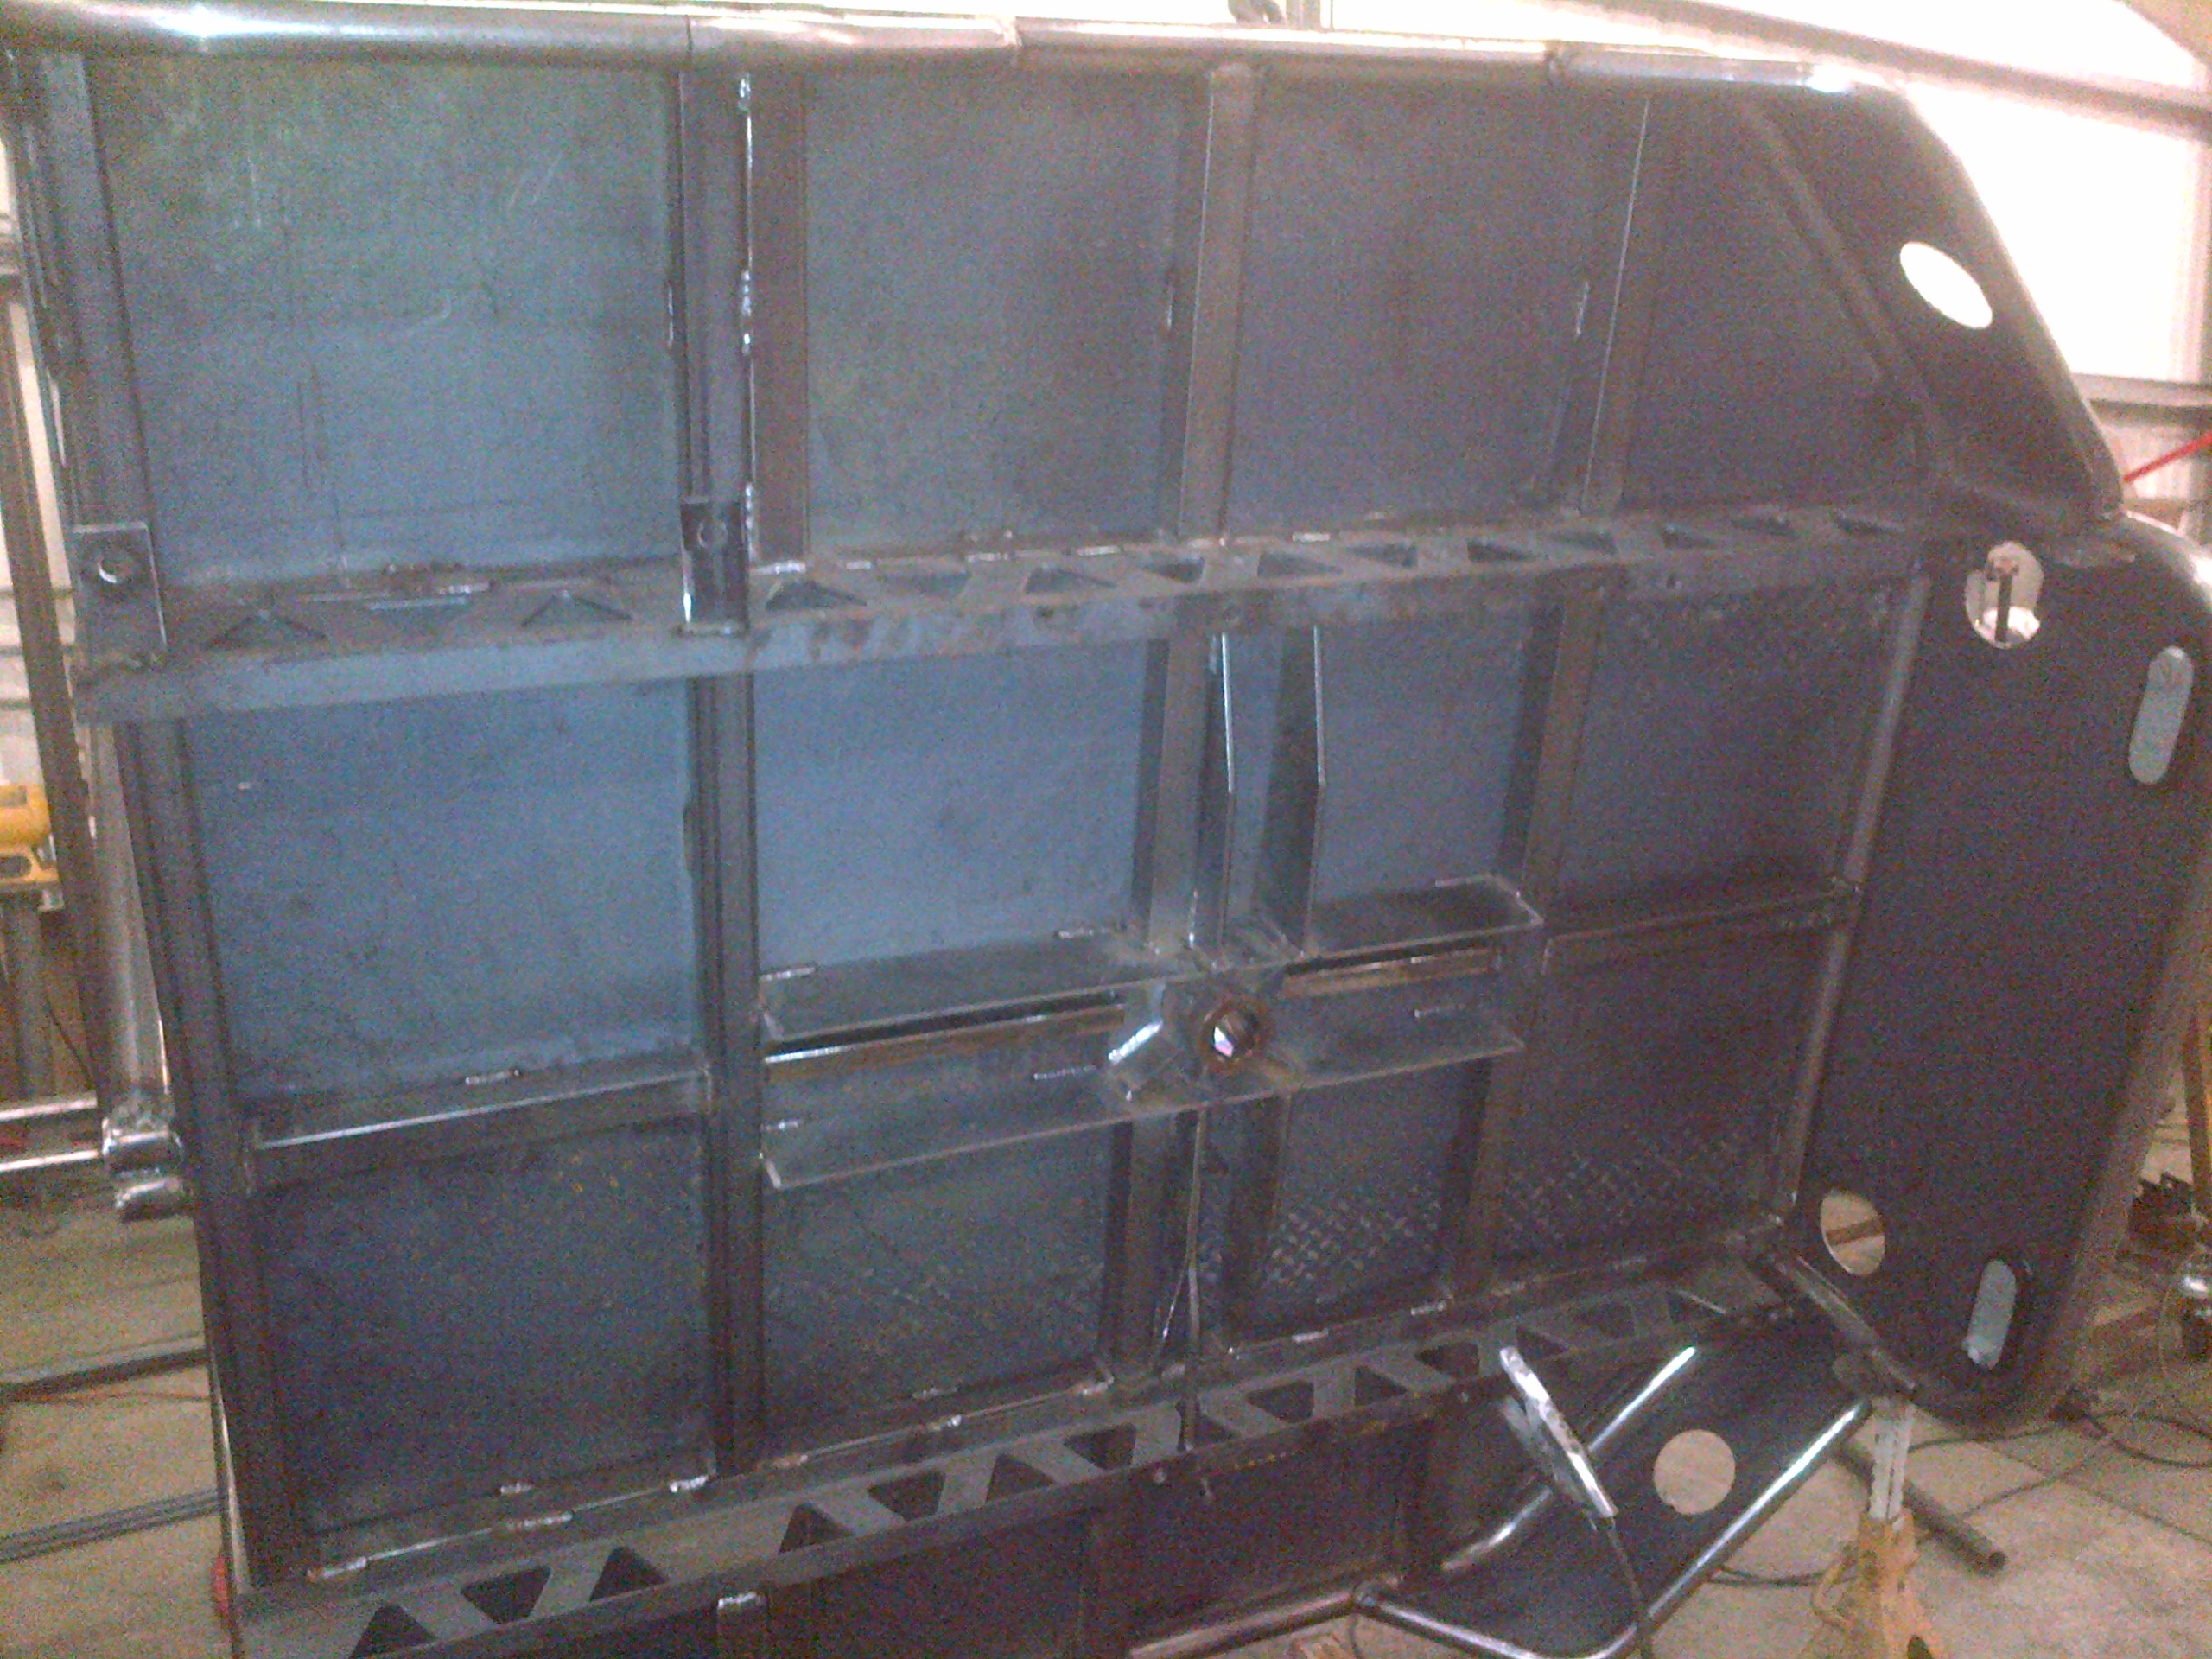 Chevy Flat bed, chase rack, headache rack   JB Fabrication and Welding